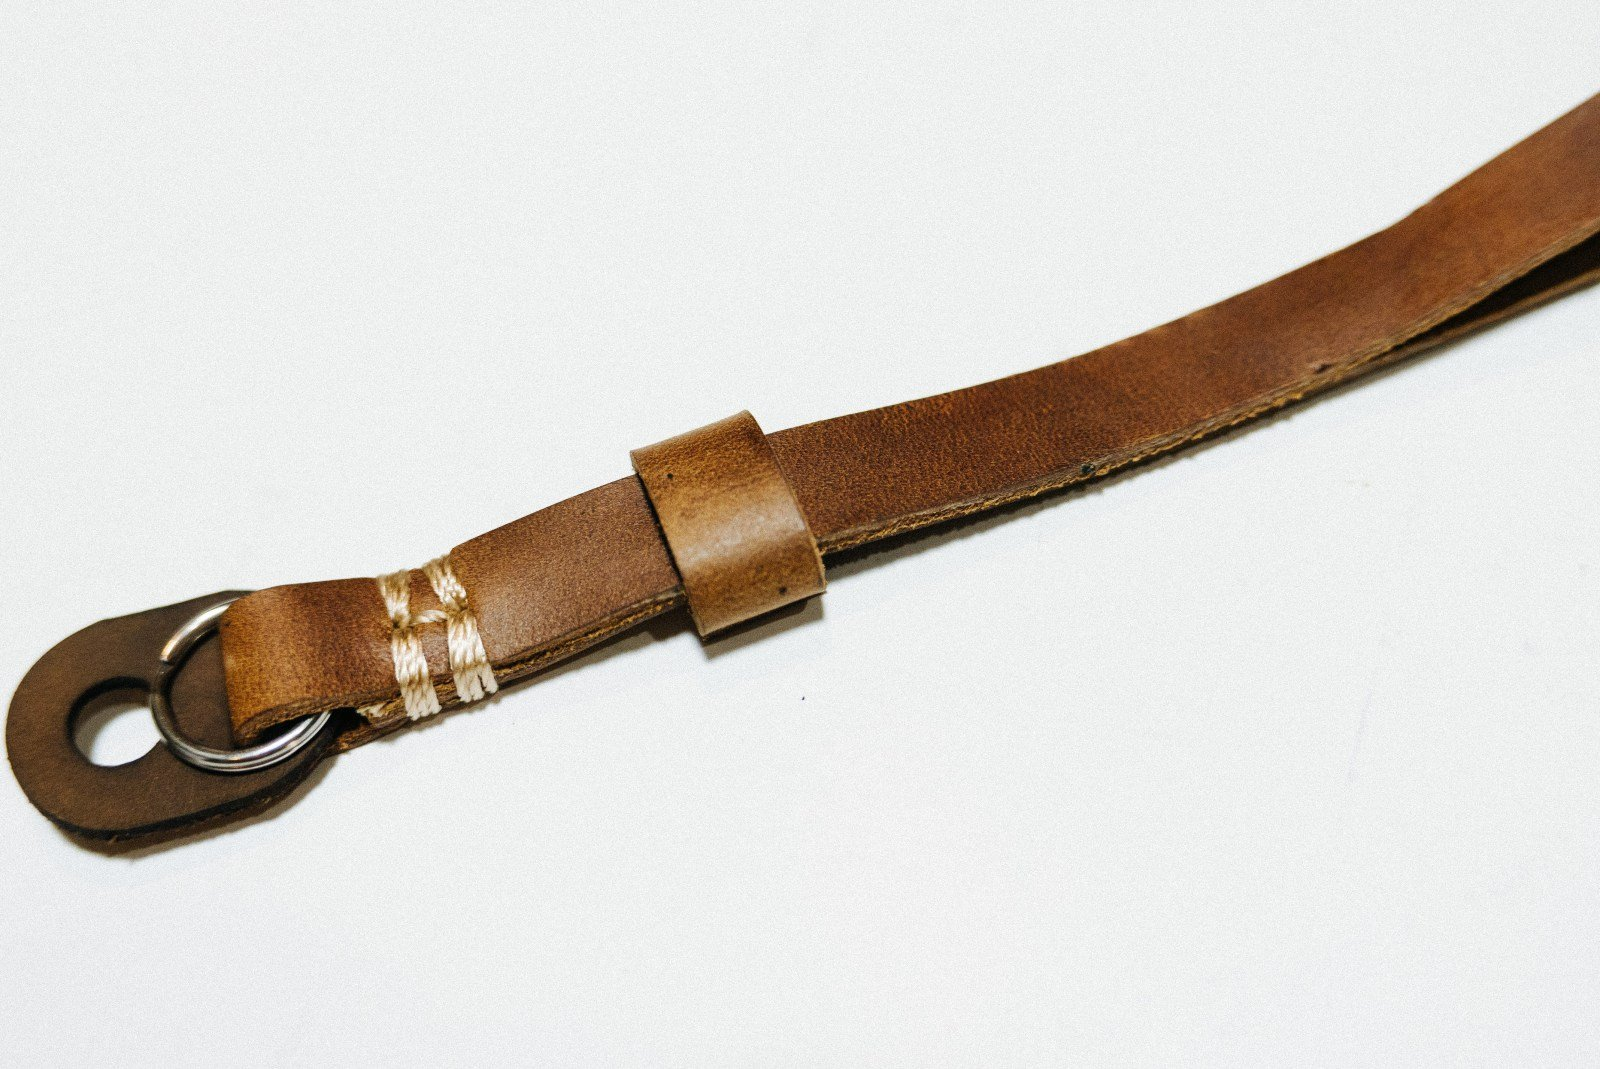 Henri by Eric Kim Handmade Premium Leather Camera Wrist Strap by Eric Kim Photography (Image #1)